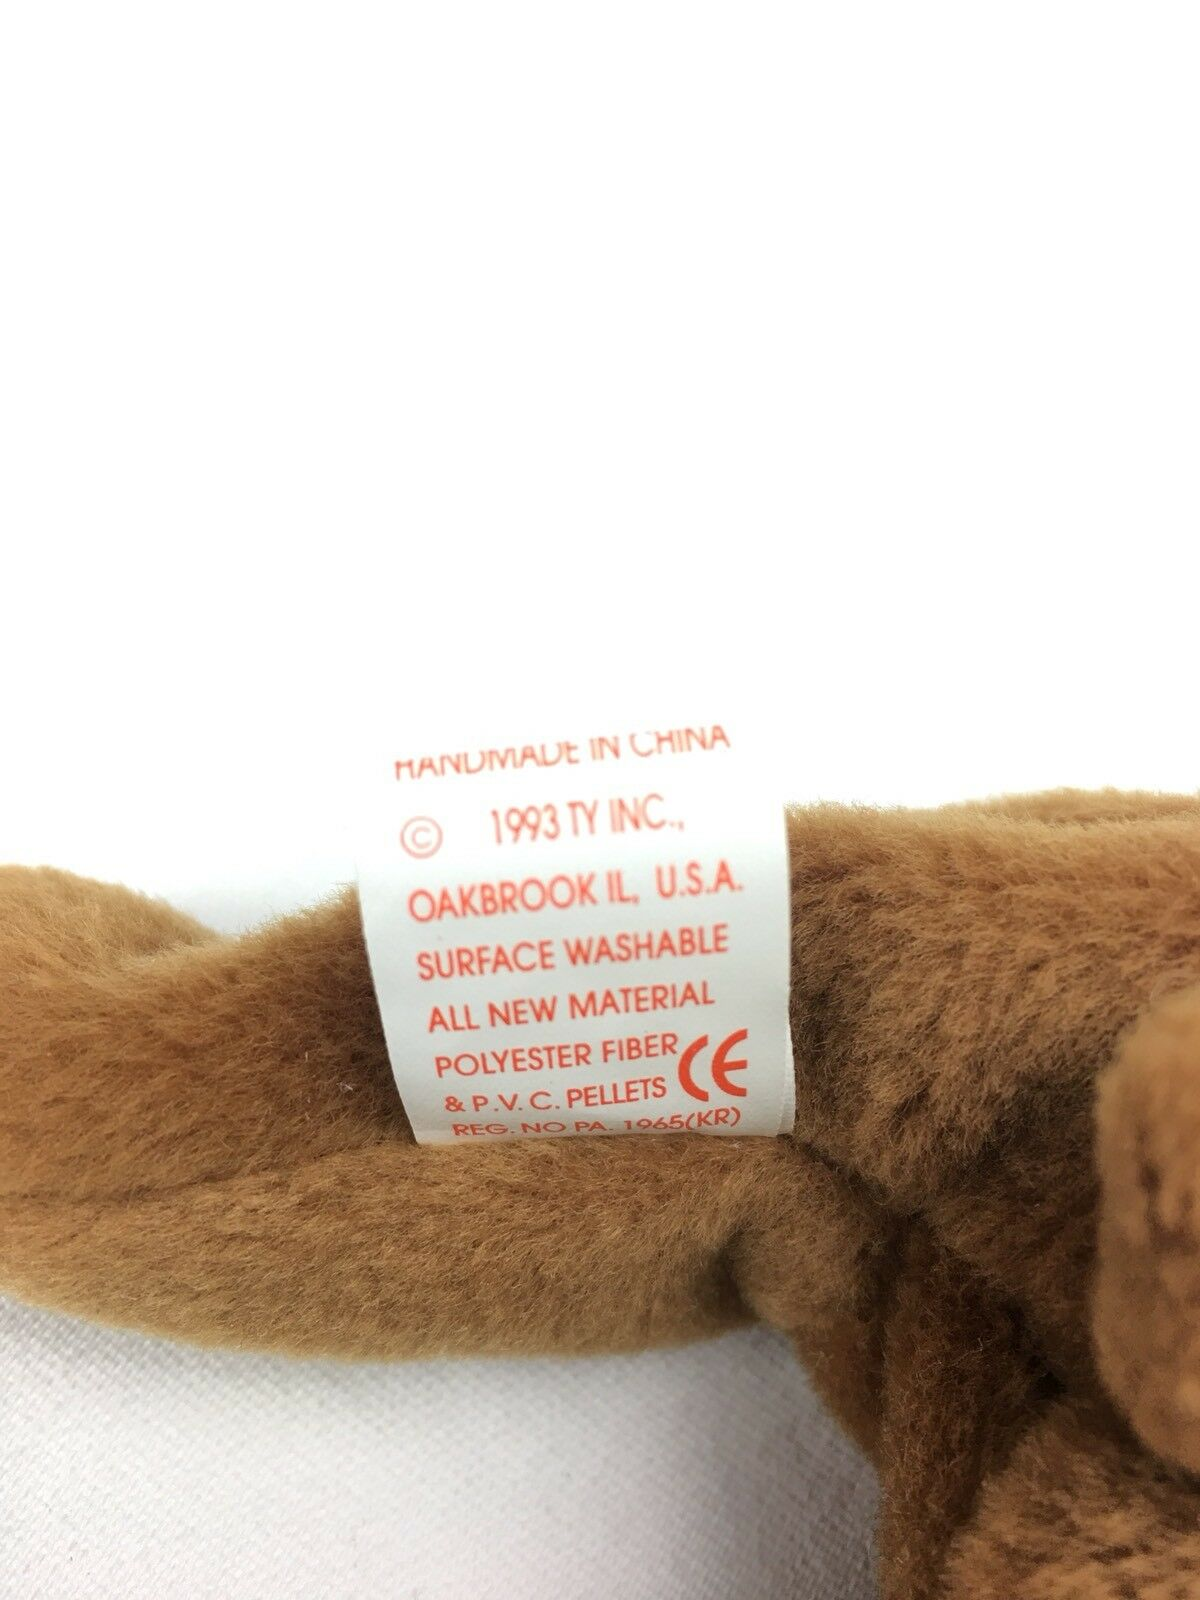 Ty Beanie Beanie Beanie Babies Cubbie 4010 Brown Bear Plush Toy Stuffed Animal PVC Pellets 4eef18